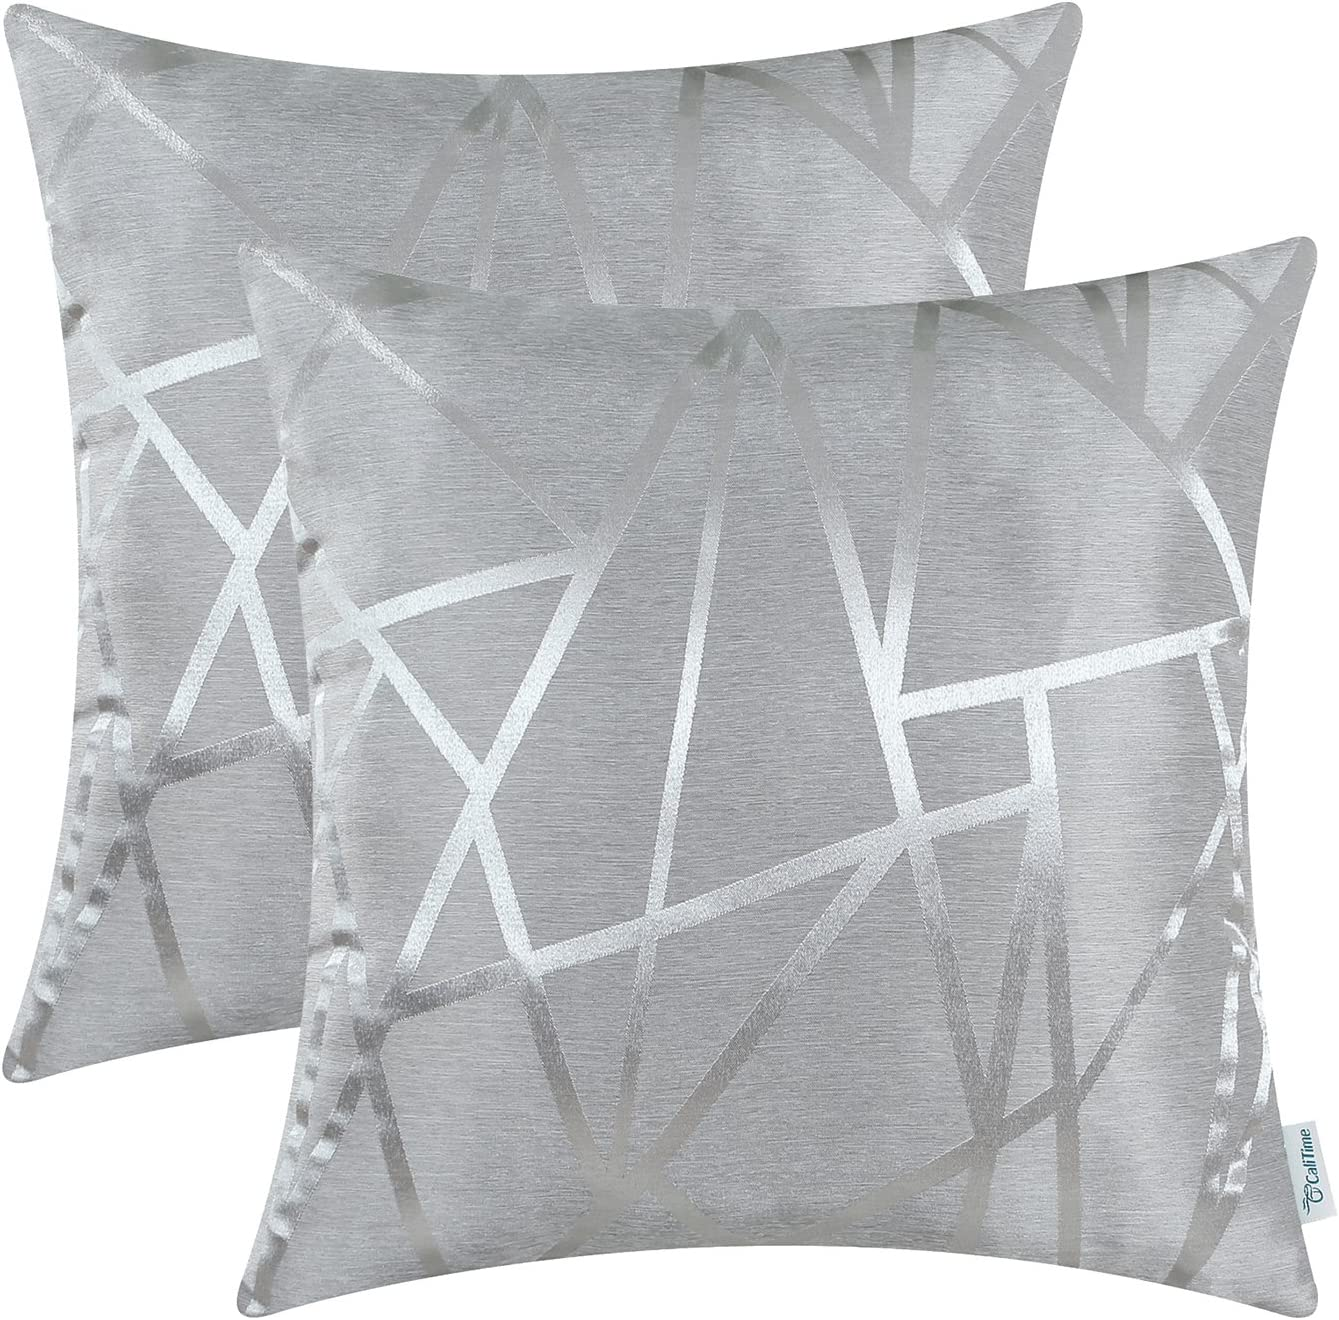 CaliTime Pack of 2 Throw Pillow Covers Cases for Couch Sofa Home Decor Modern Shining & Dull Contrast Triangles Abstract Lines Geometric 20 X 20 Inches Silver Gray